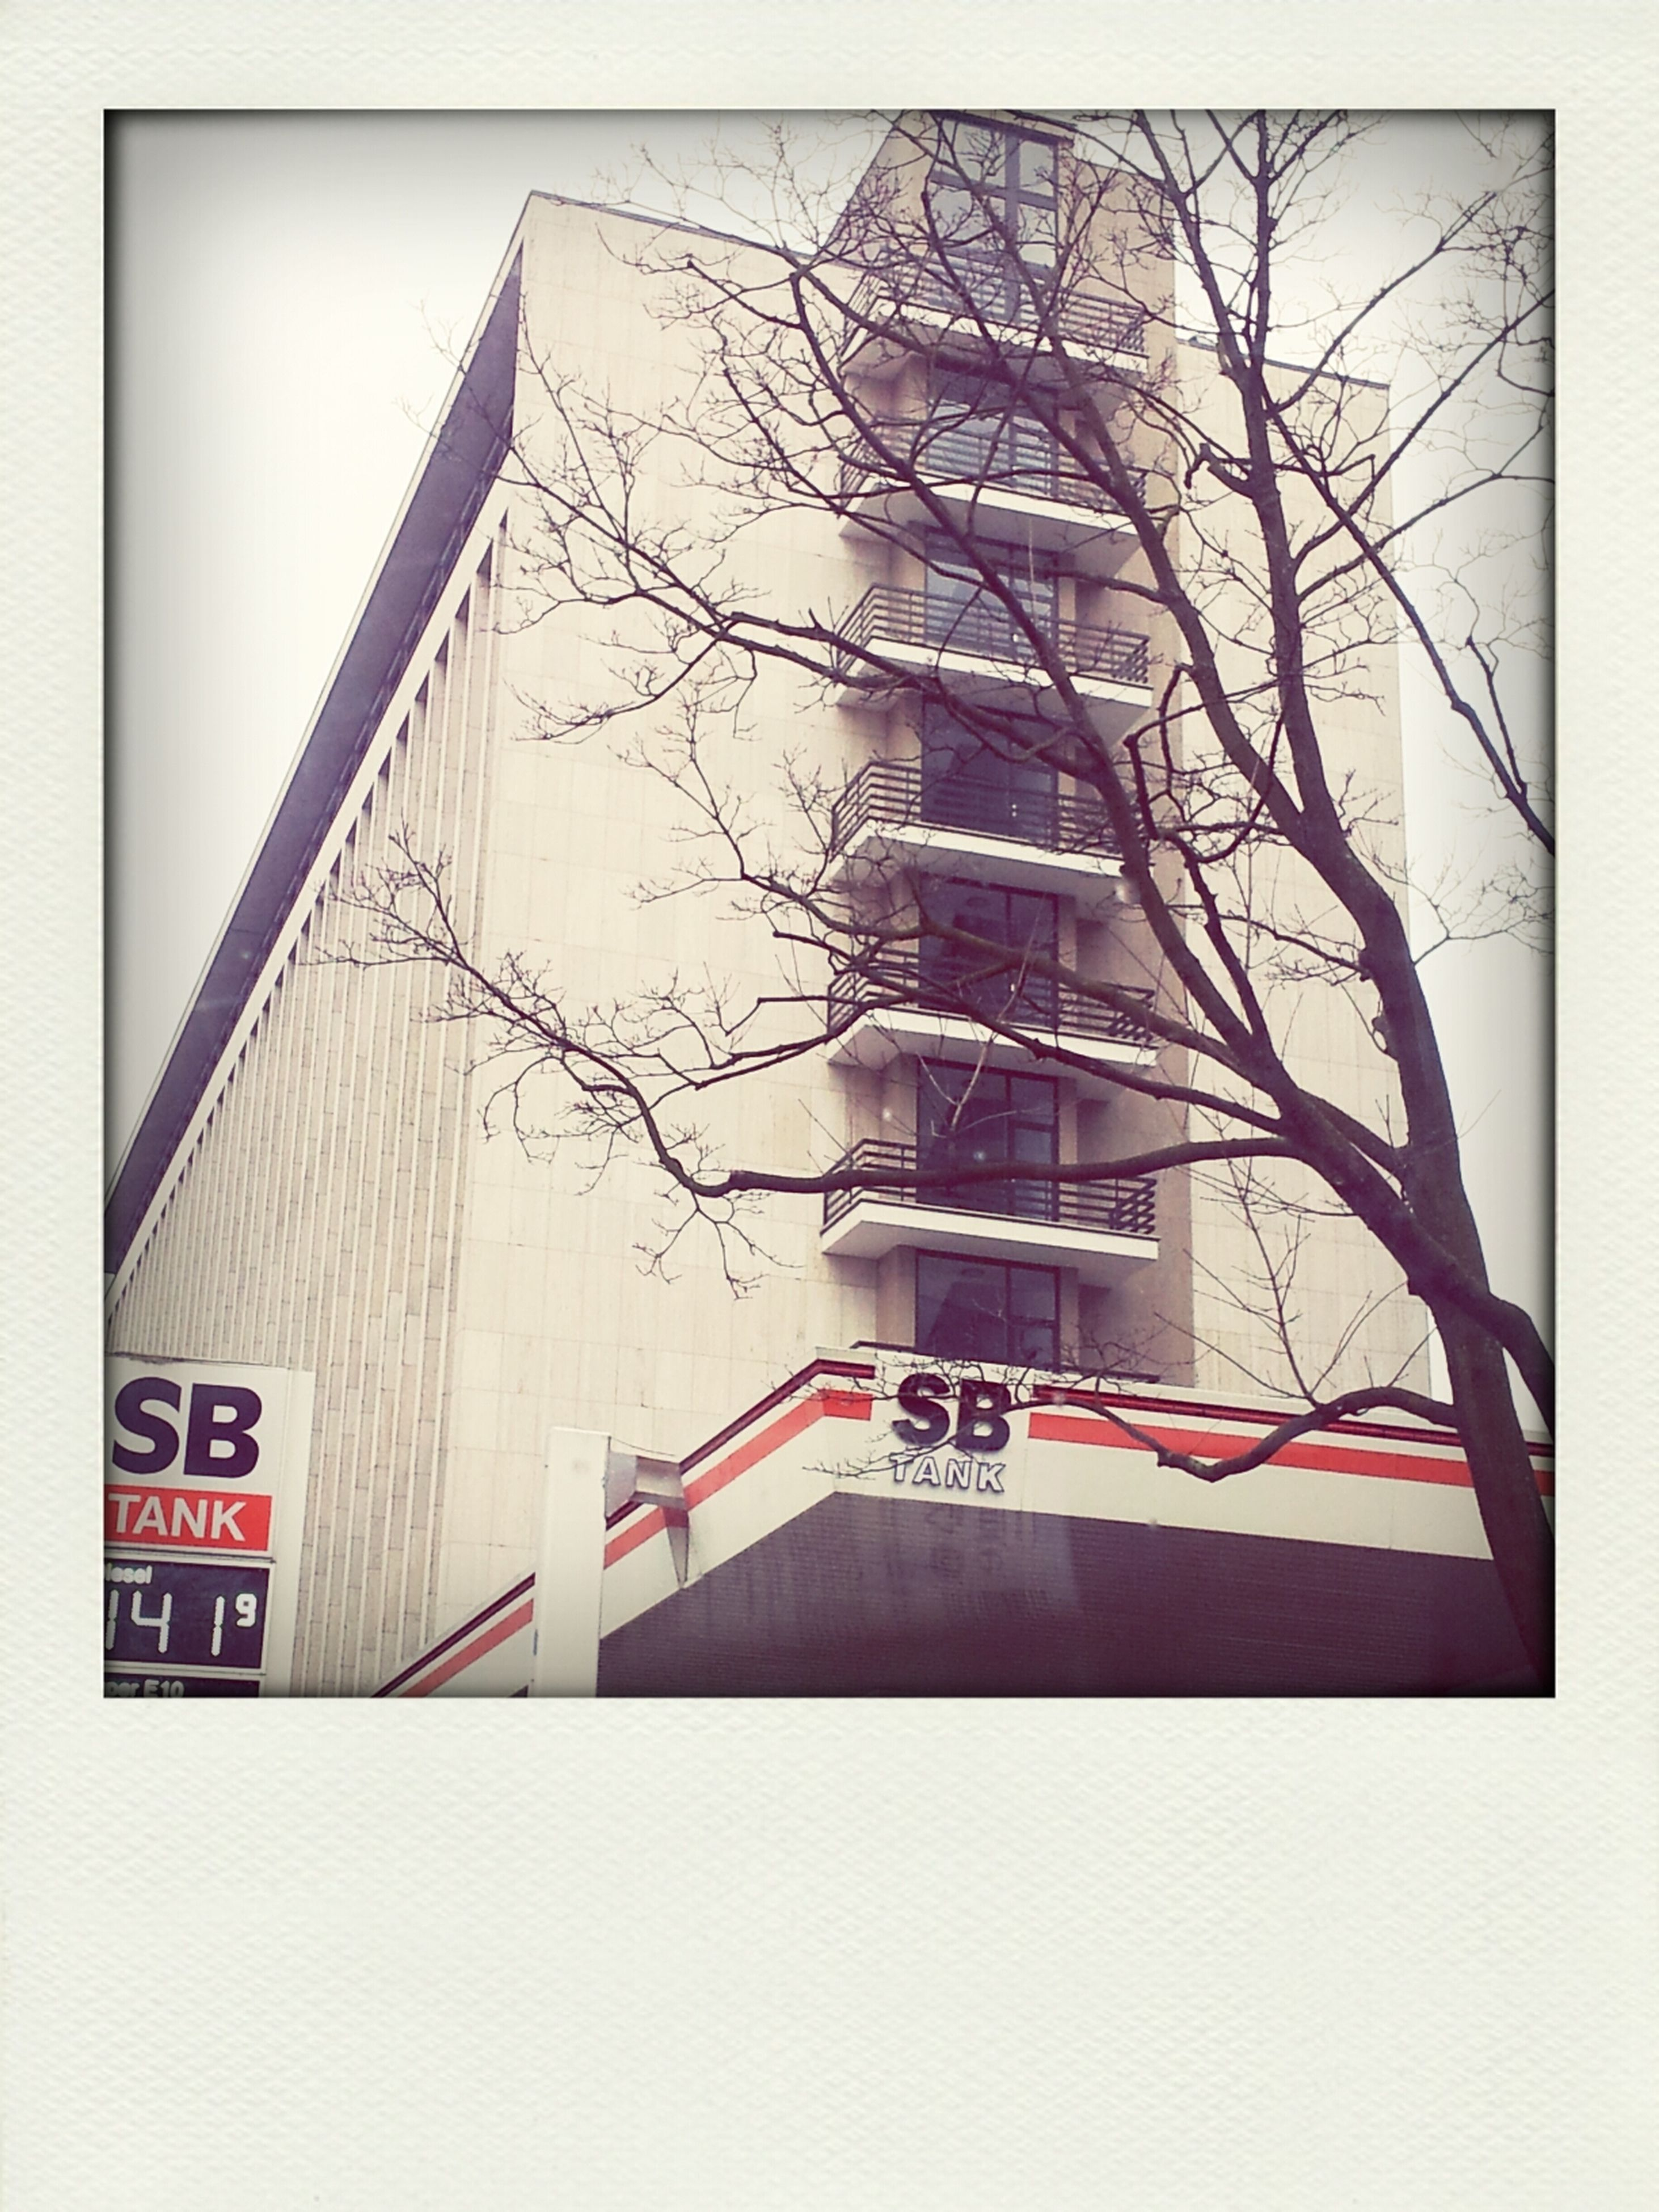 architecture, building exterior, built structure, low angle view, transfer print, auto post production filter, bare tree, building, city, tower, no people, day, sky, outdoors, clear sky, text, tall - high, tree, communication, residential building